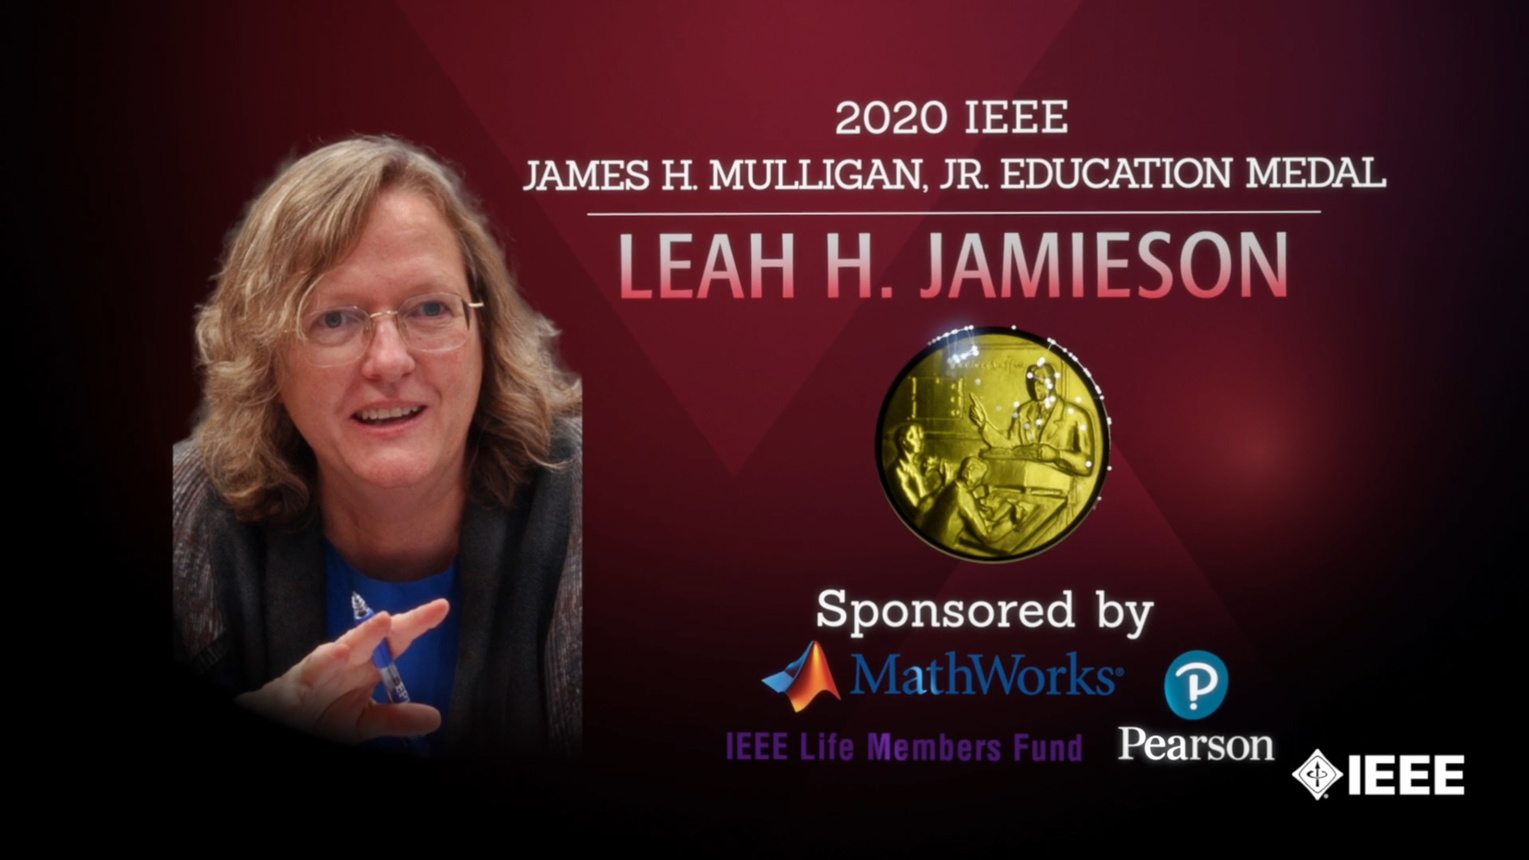 Honors 2020: Leah H. Jamieson Wins the James H. Mulligan, Jr. Education Medal